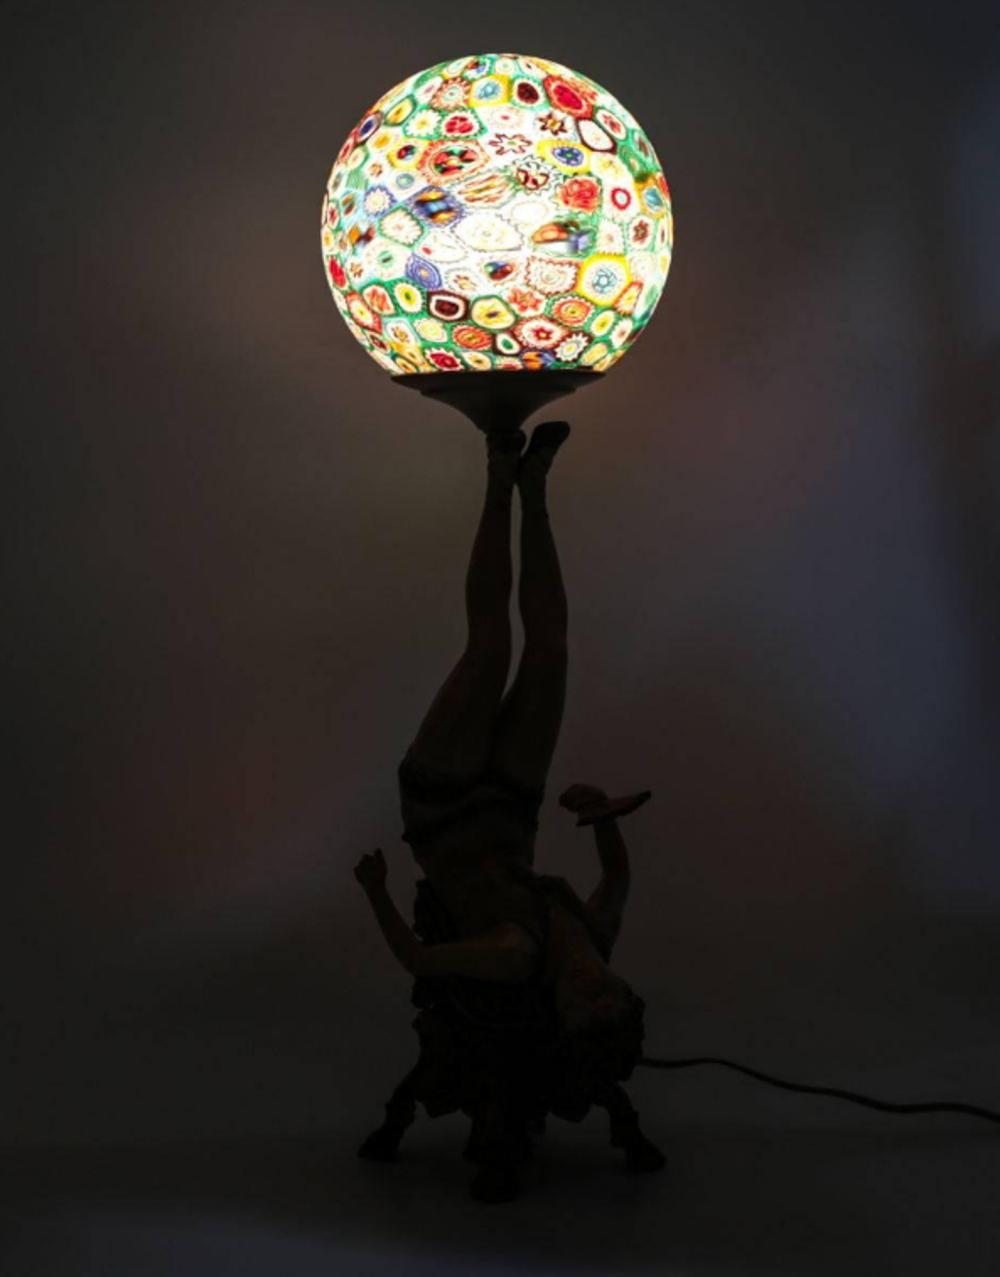 Sold Price Art Deco Polychrome Dancer Lamp Millefiori Shade Invalid Date Pdt